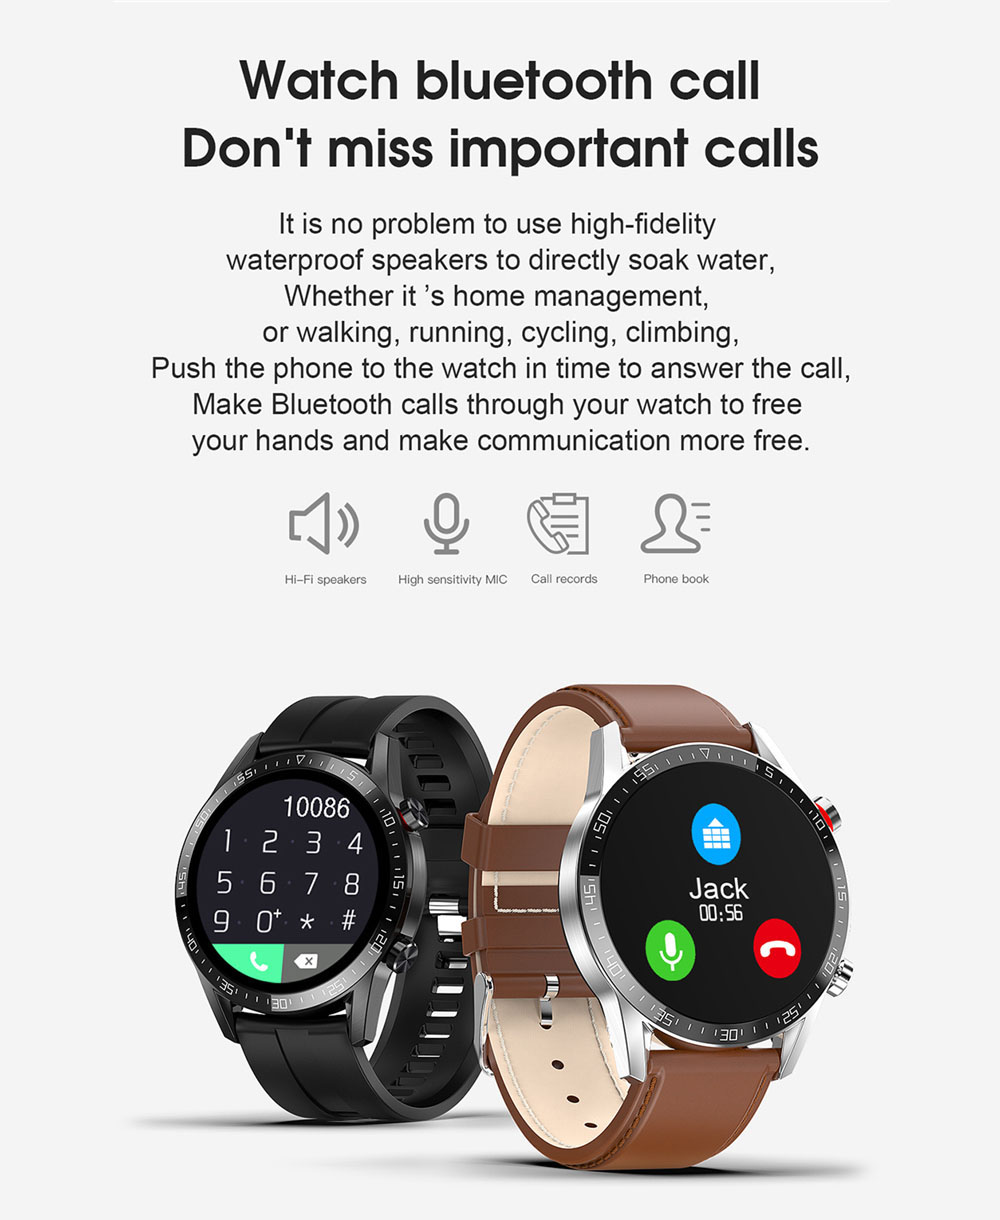 DT21B Fitness Tracker Bluetooth Phone Watch Weather Reports Full-touch HD Color Carbon Fiber Body Multi Sport Watch - Silver Regular